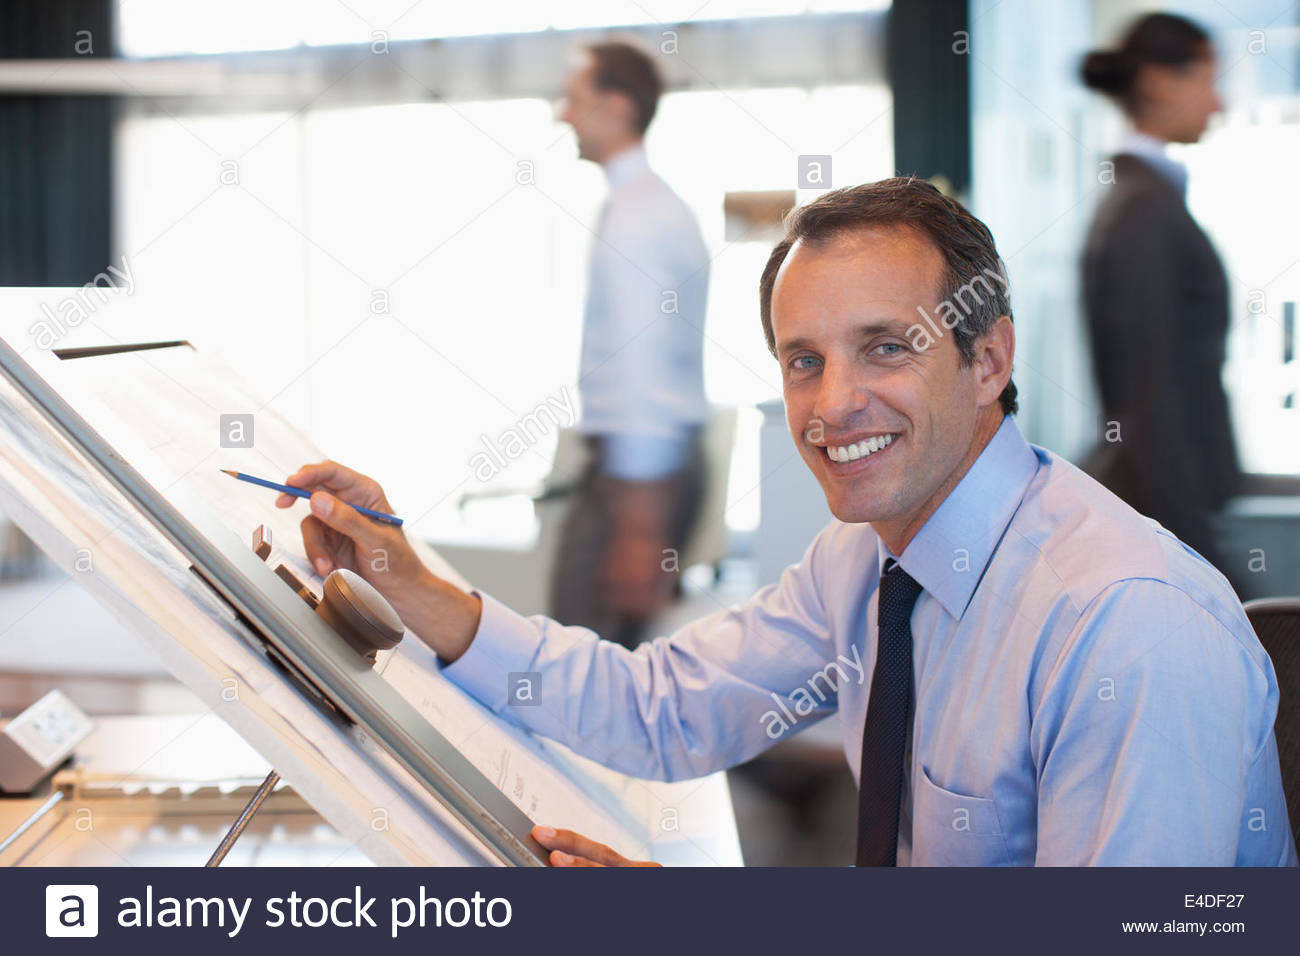 Architect drawing blueprint in office - Stock Image